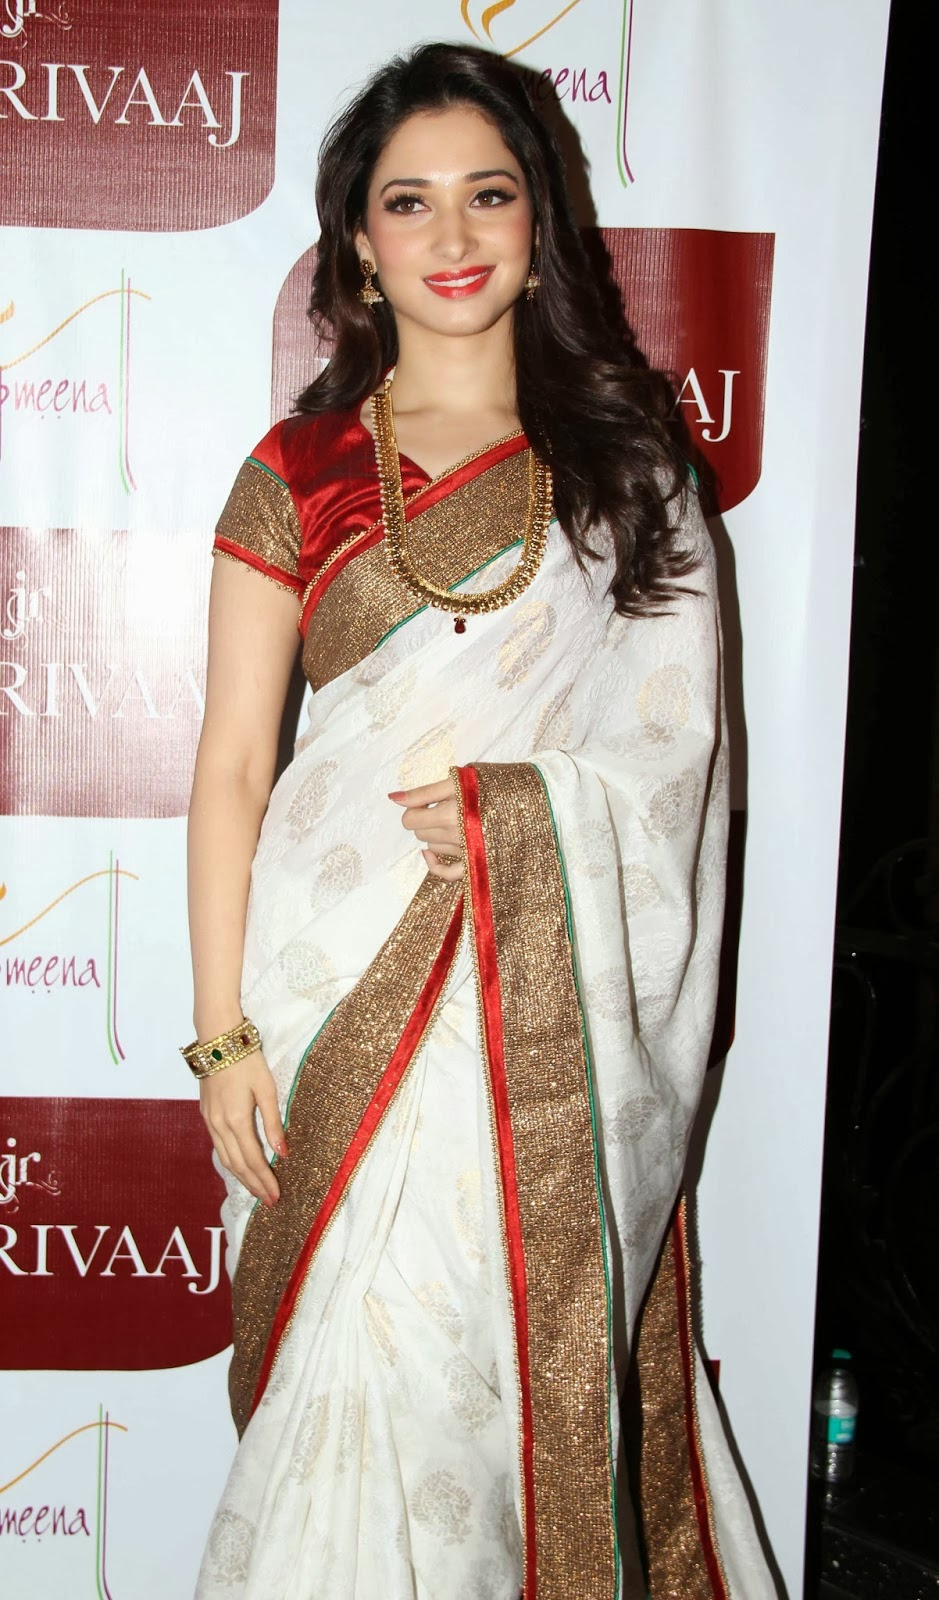 Tamanna hot pictures in white saree for jewellery ads ...